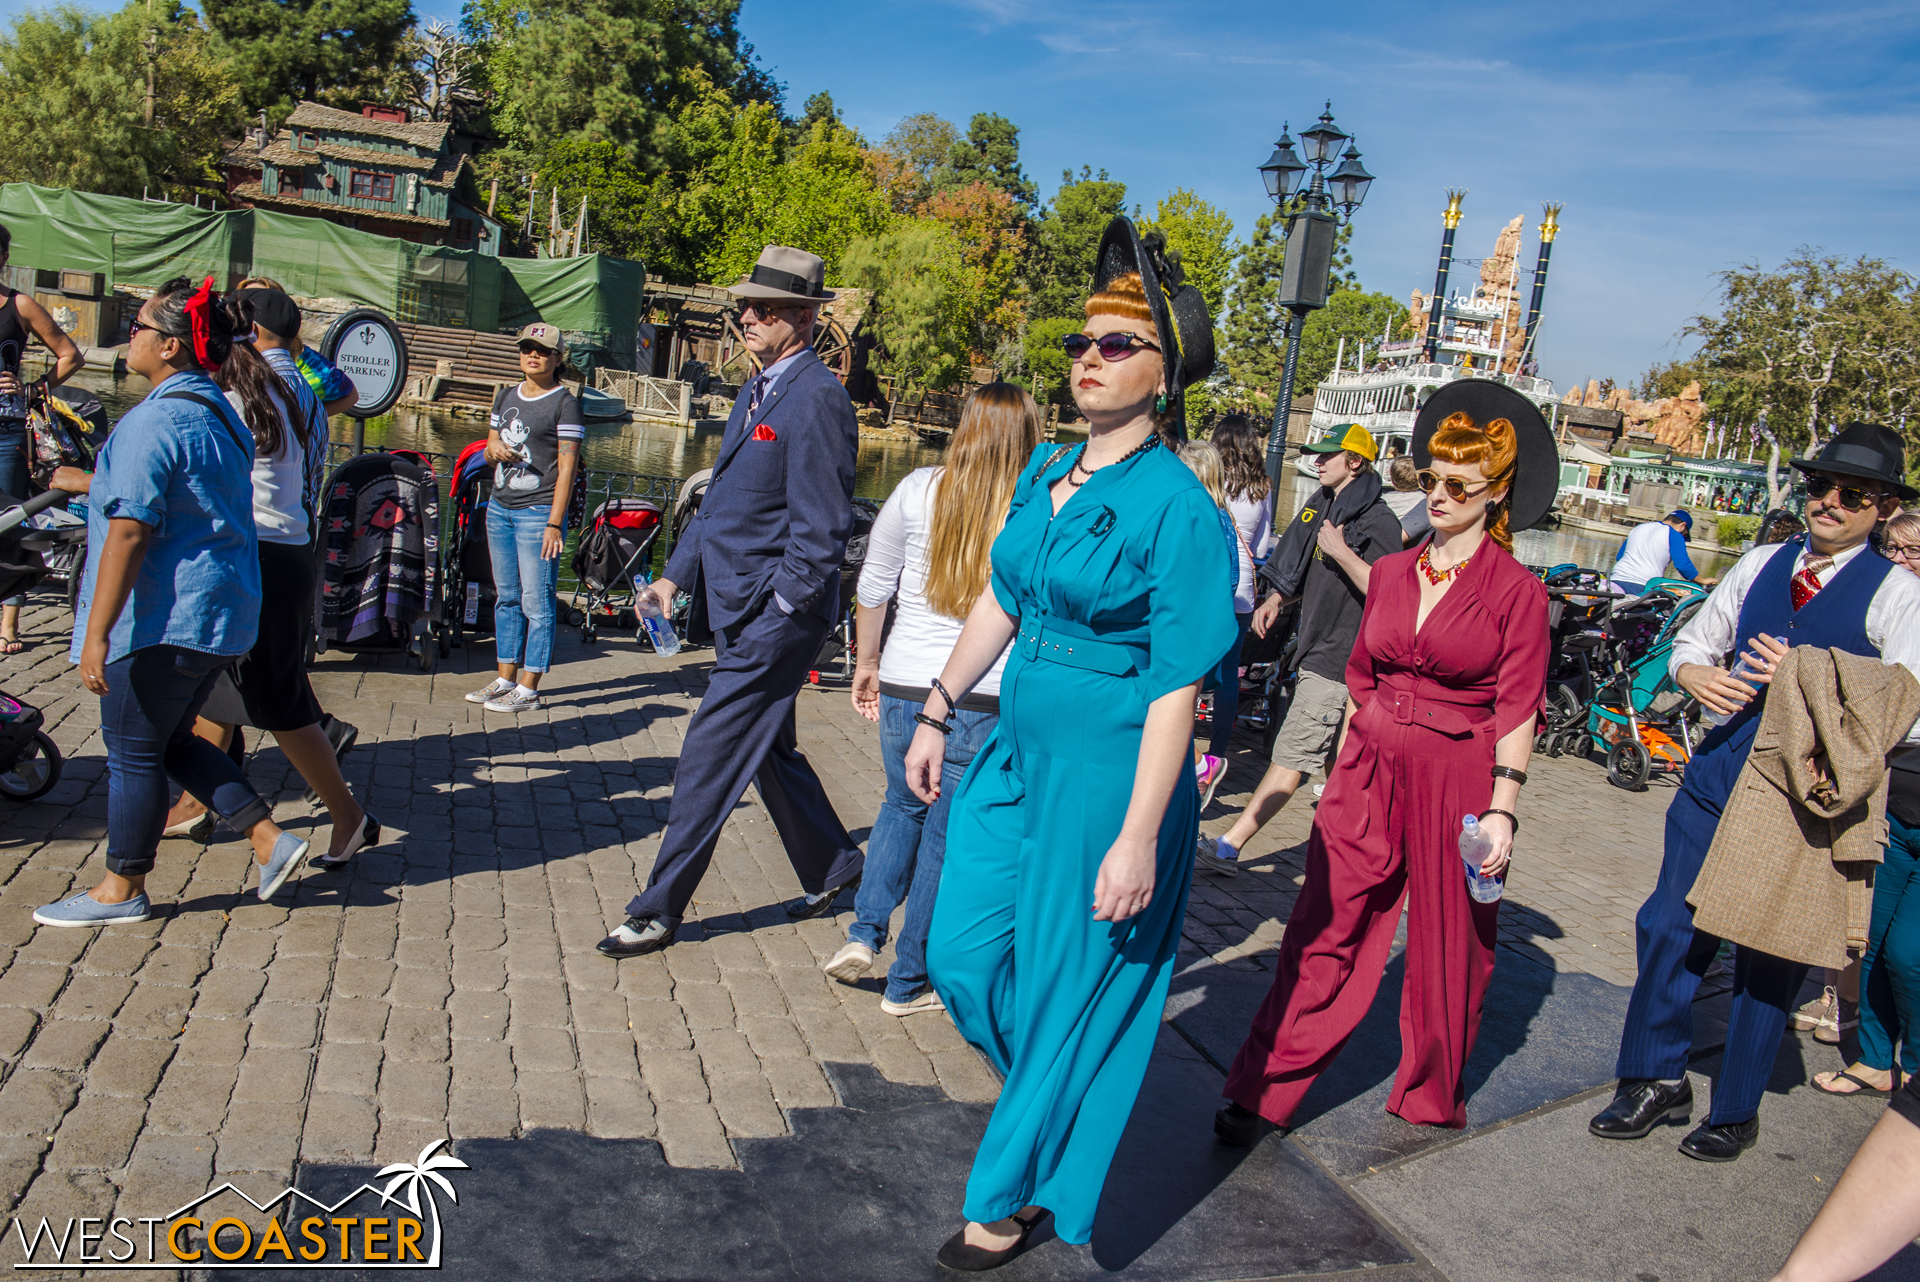 People spotting is a great hobby during Dapper Day.